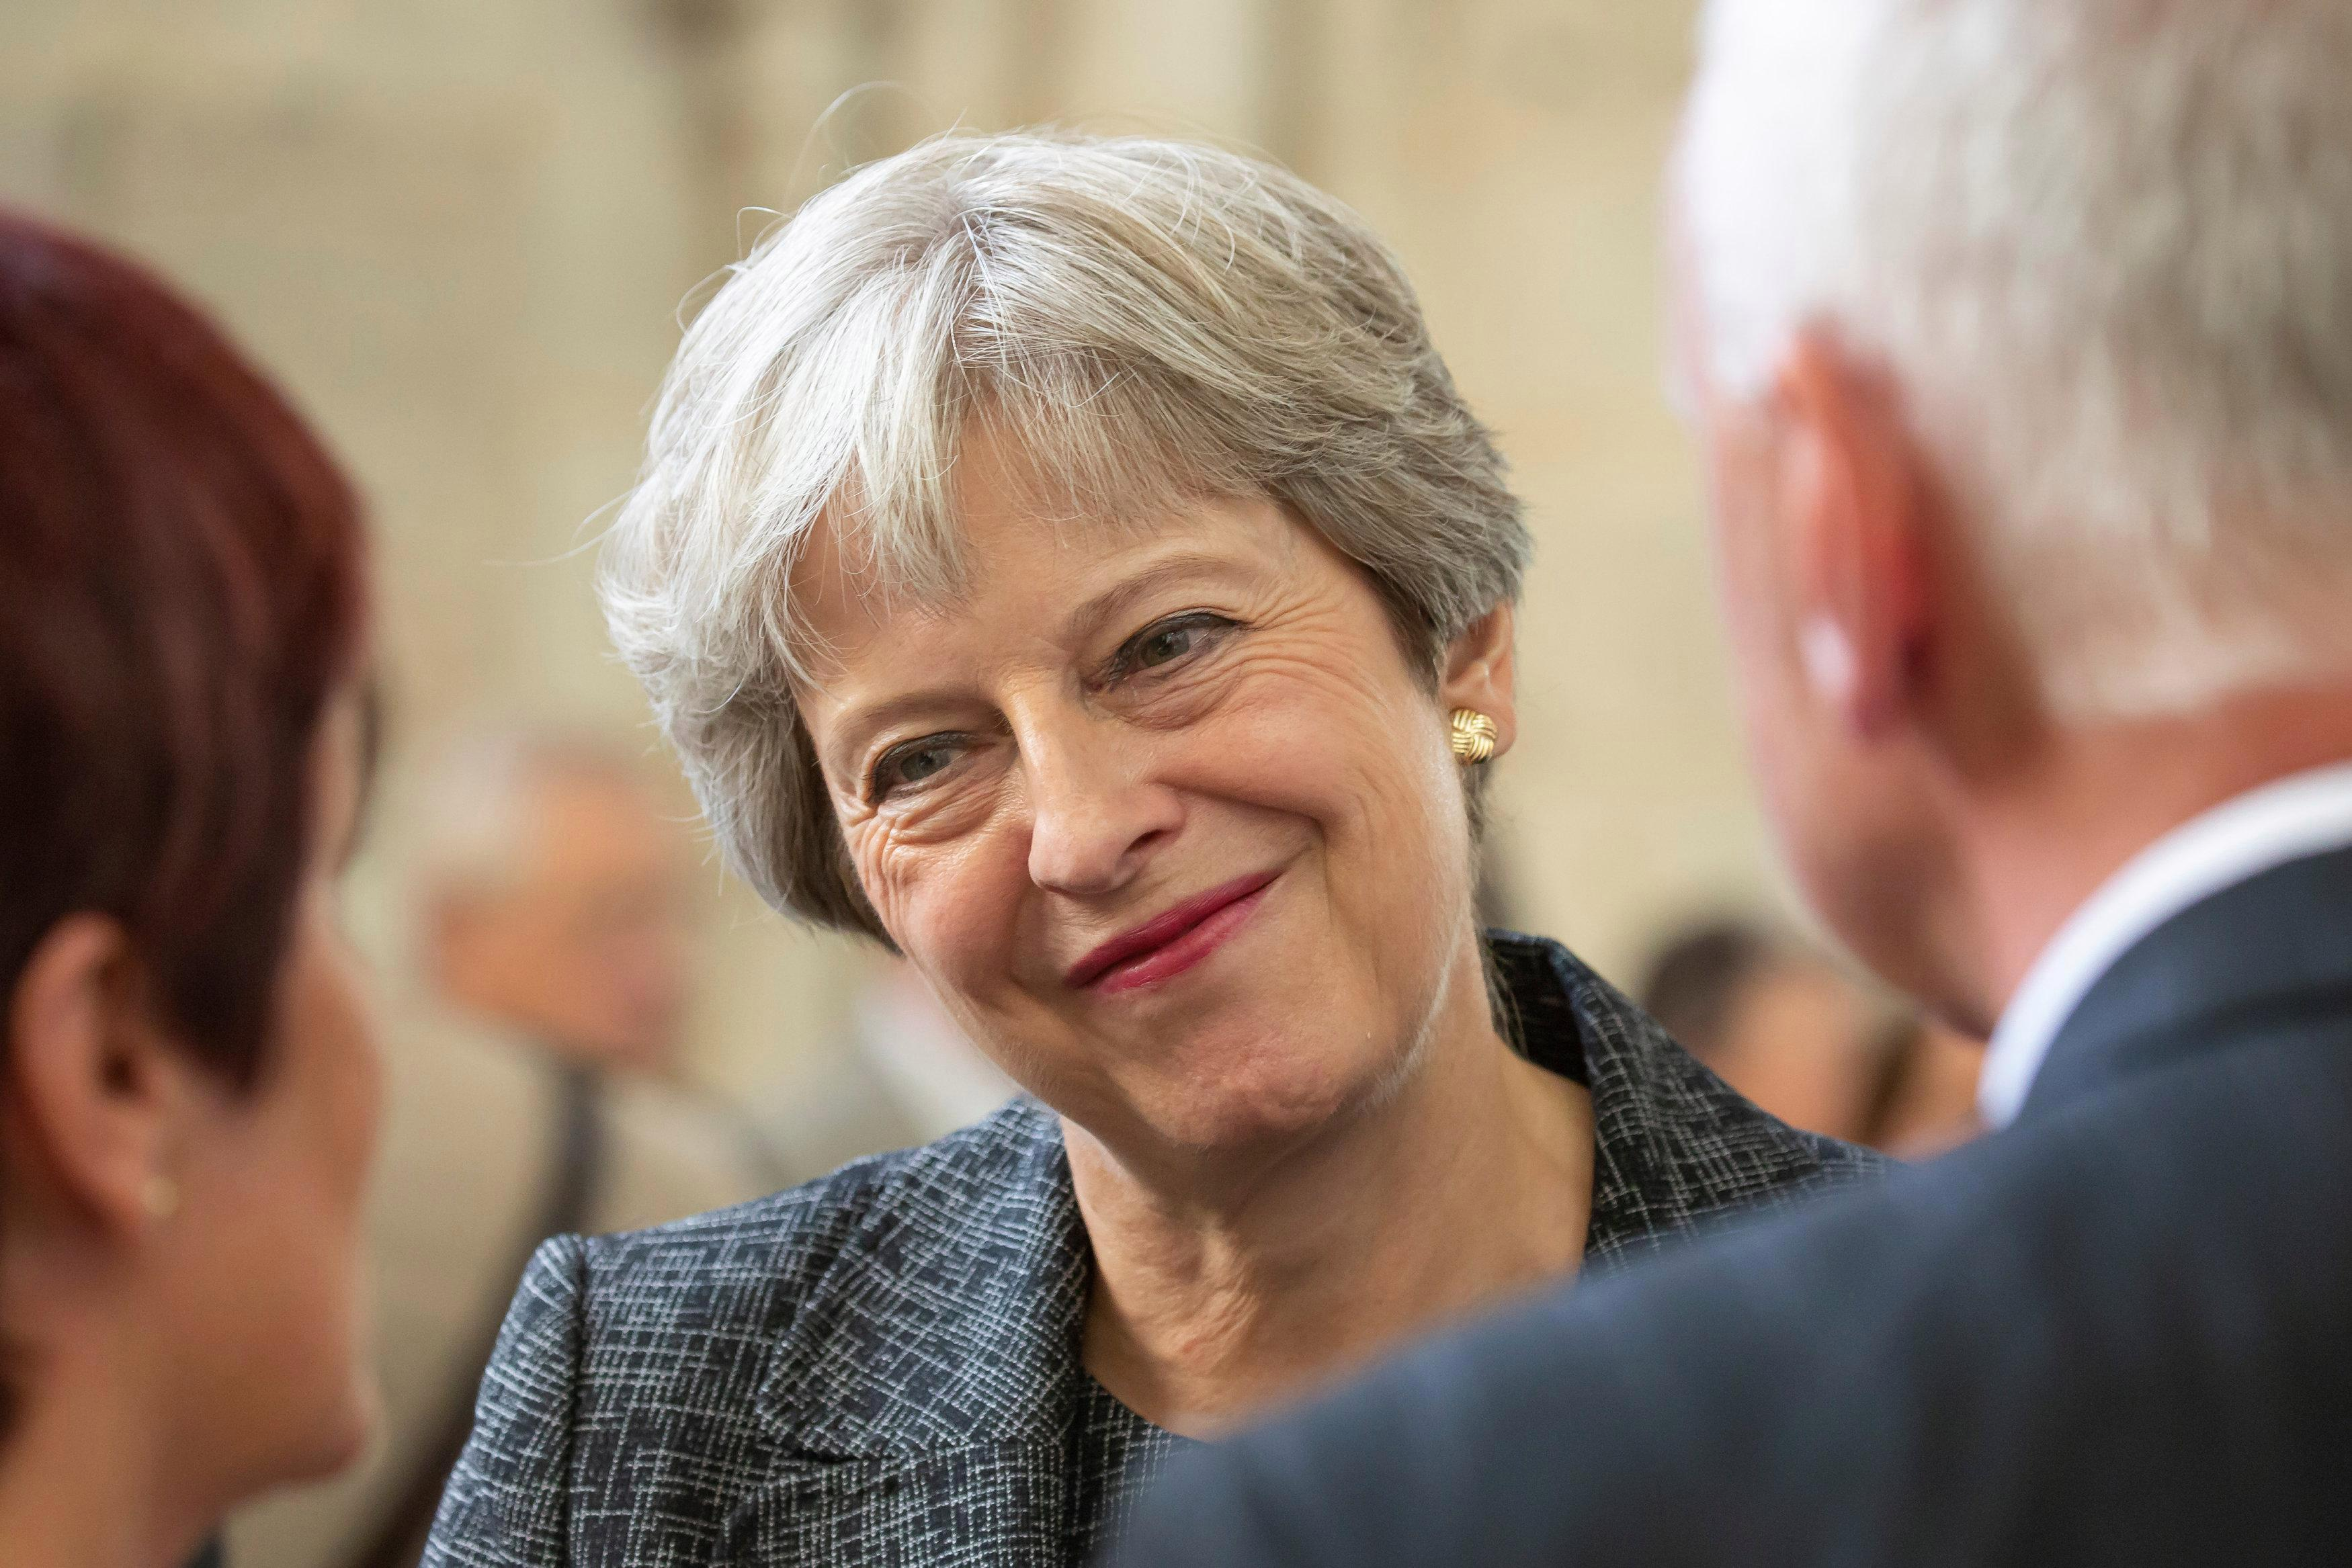 Theresa May's public sector wage hikes leaves tens of thousands of public sector workers with LESS take home pay